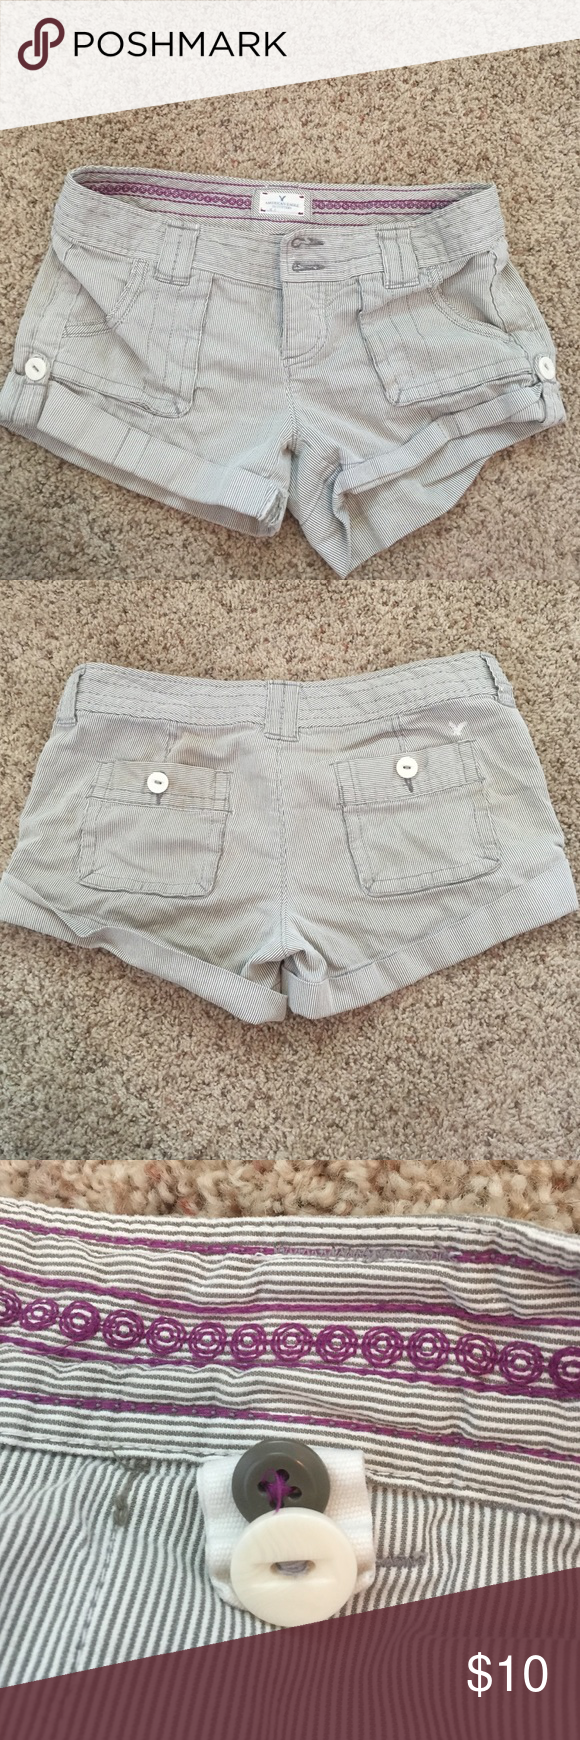 Striped shorts Has an adjustable waist band and a little ware on a seam as seen on the fourth picture American Eagle Outfitters Shorts Jean Shorts